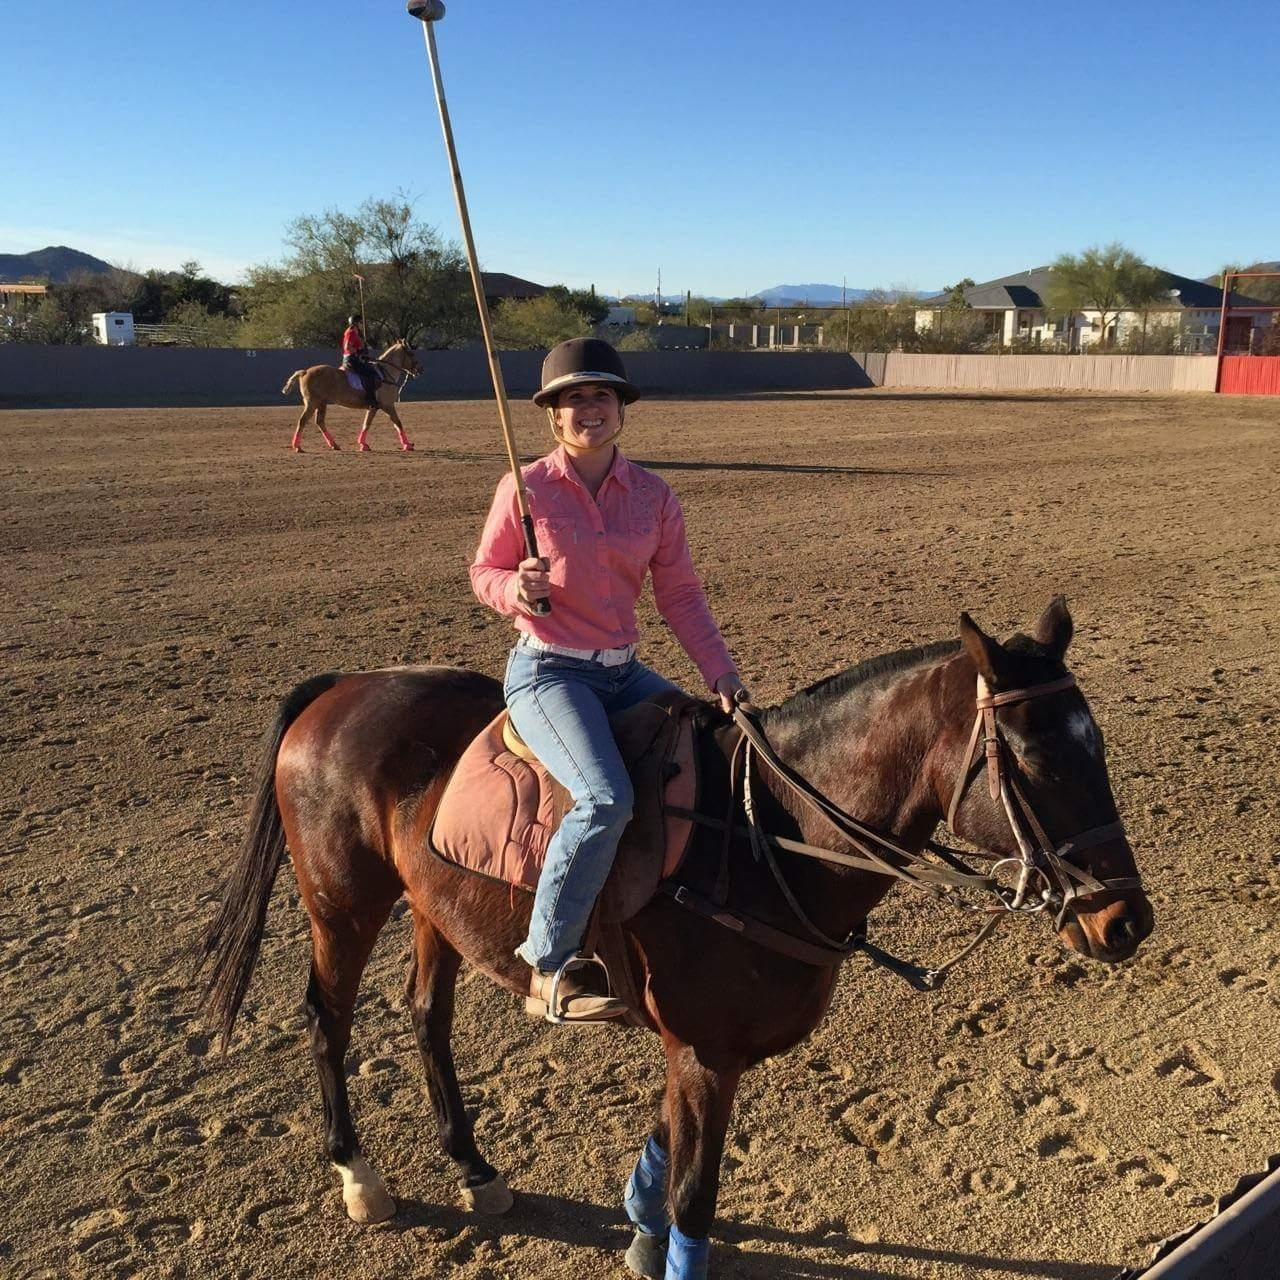 Jockey Megan Fadlovich riding at Polo Azteca Club & Academy in Arizona